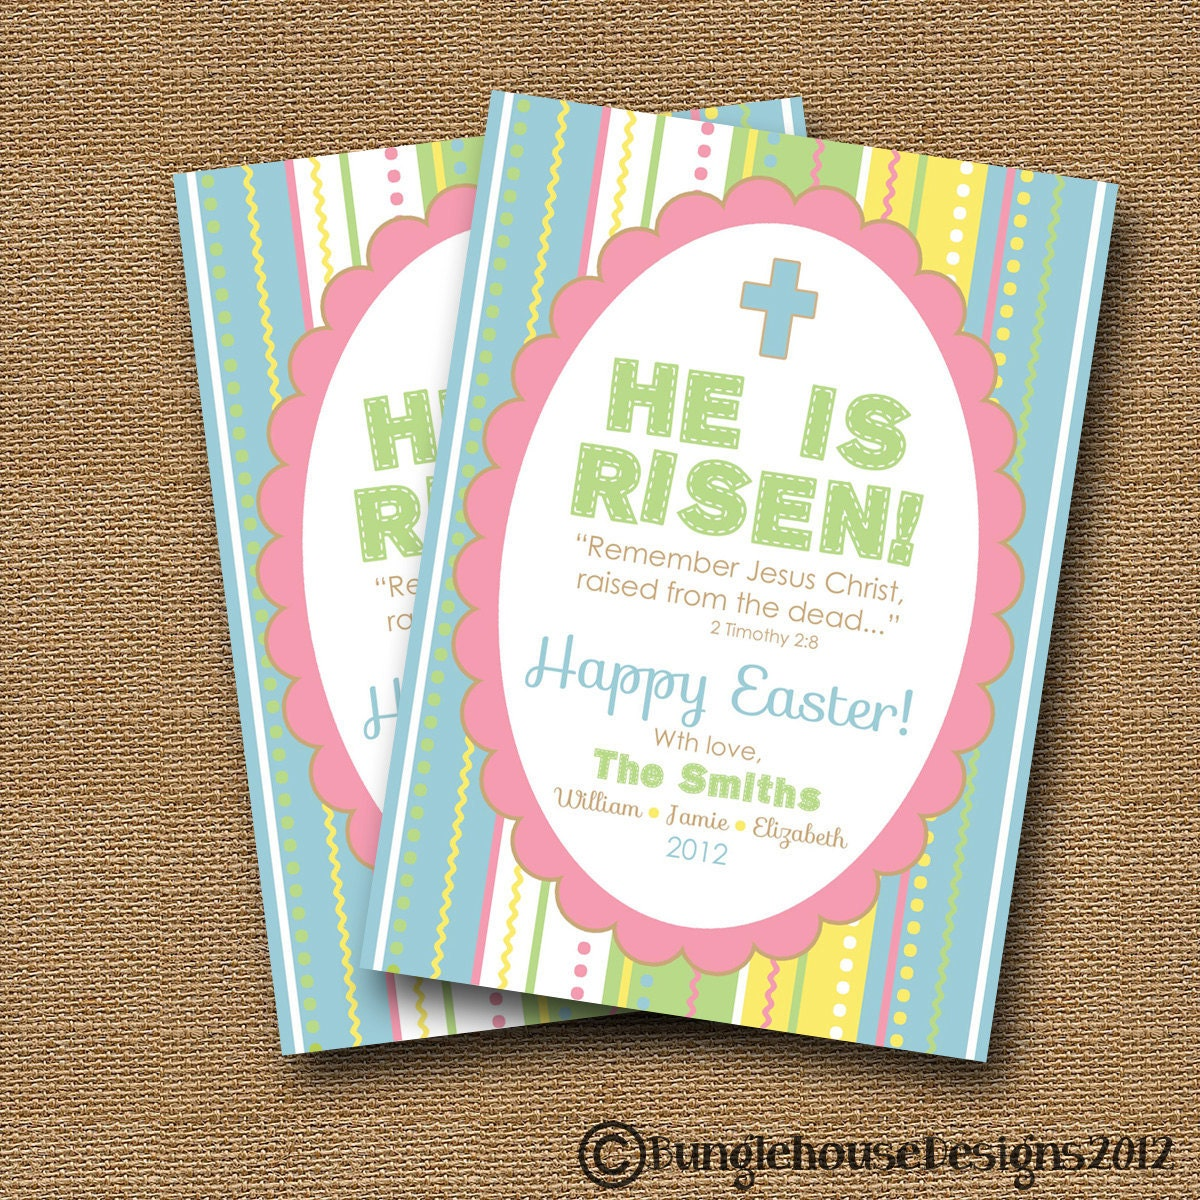 Monster image in free printable religious easter cards